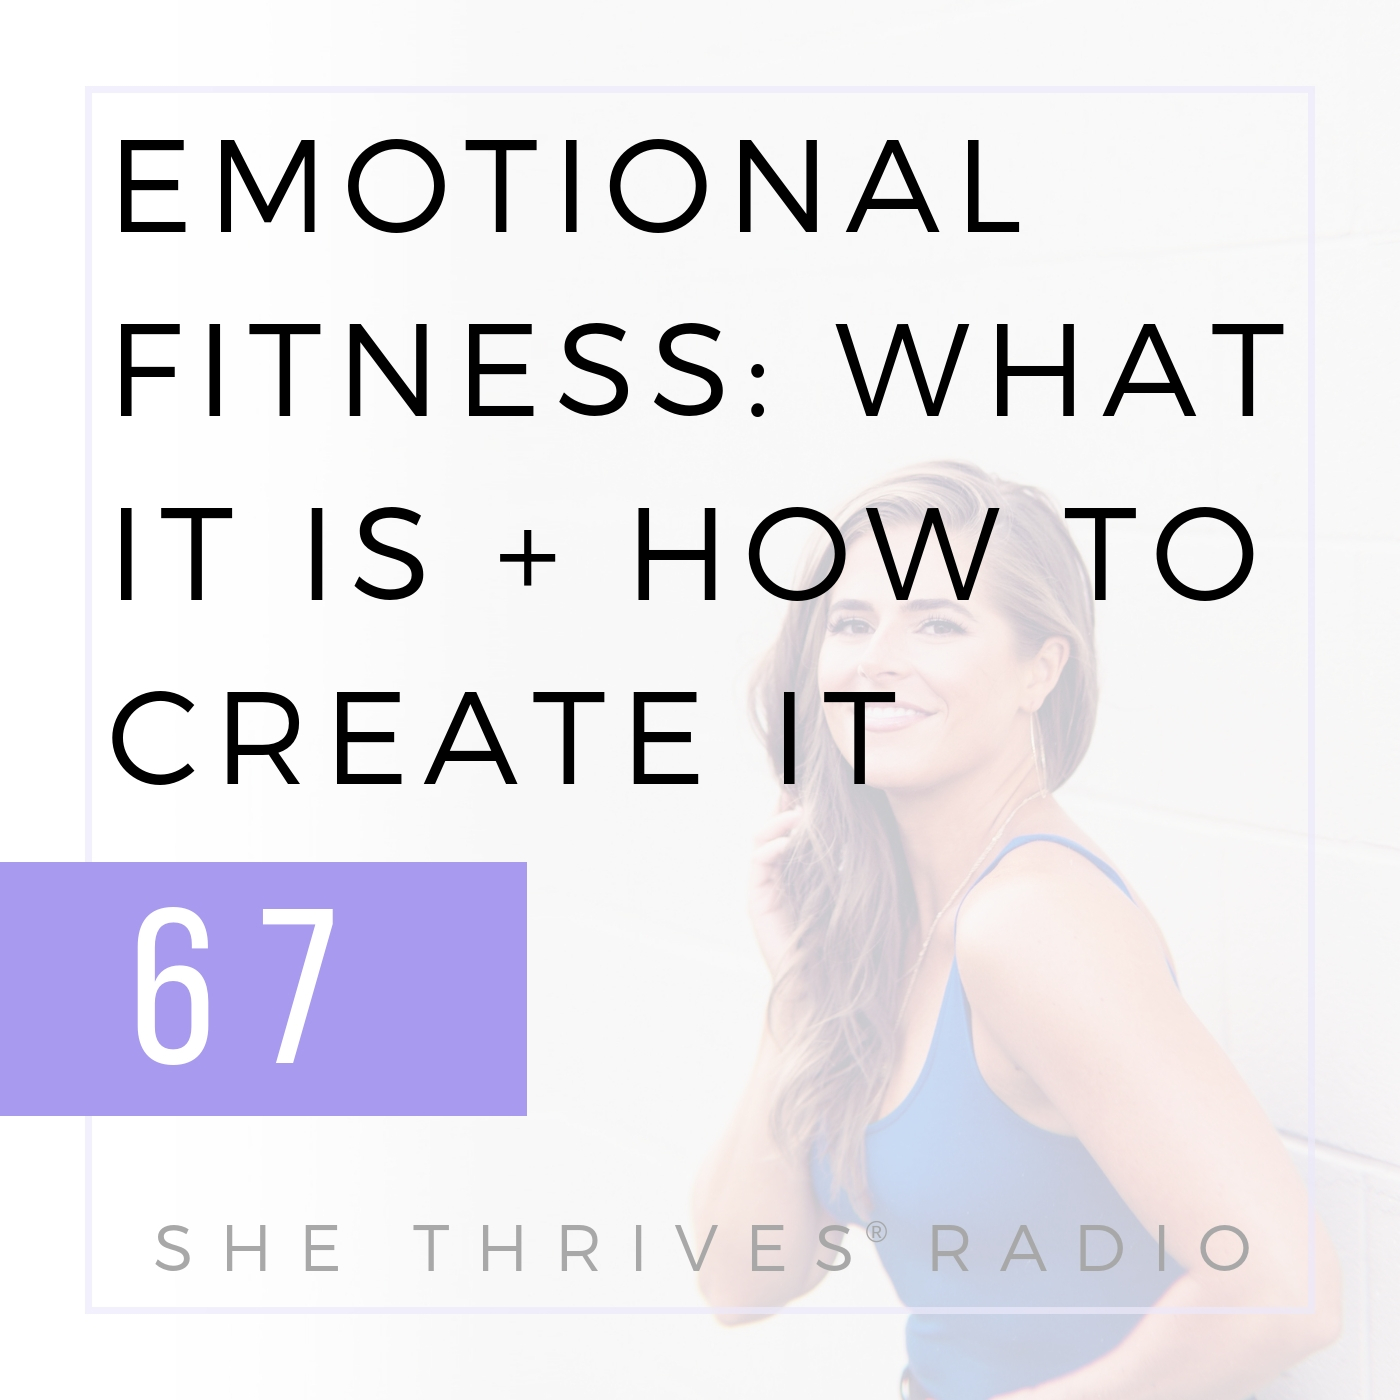 67 | Emotional Fitness: What it is, Why it Matters + How to Create it | SHE THRIVES RADIO